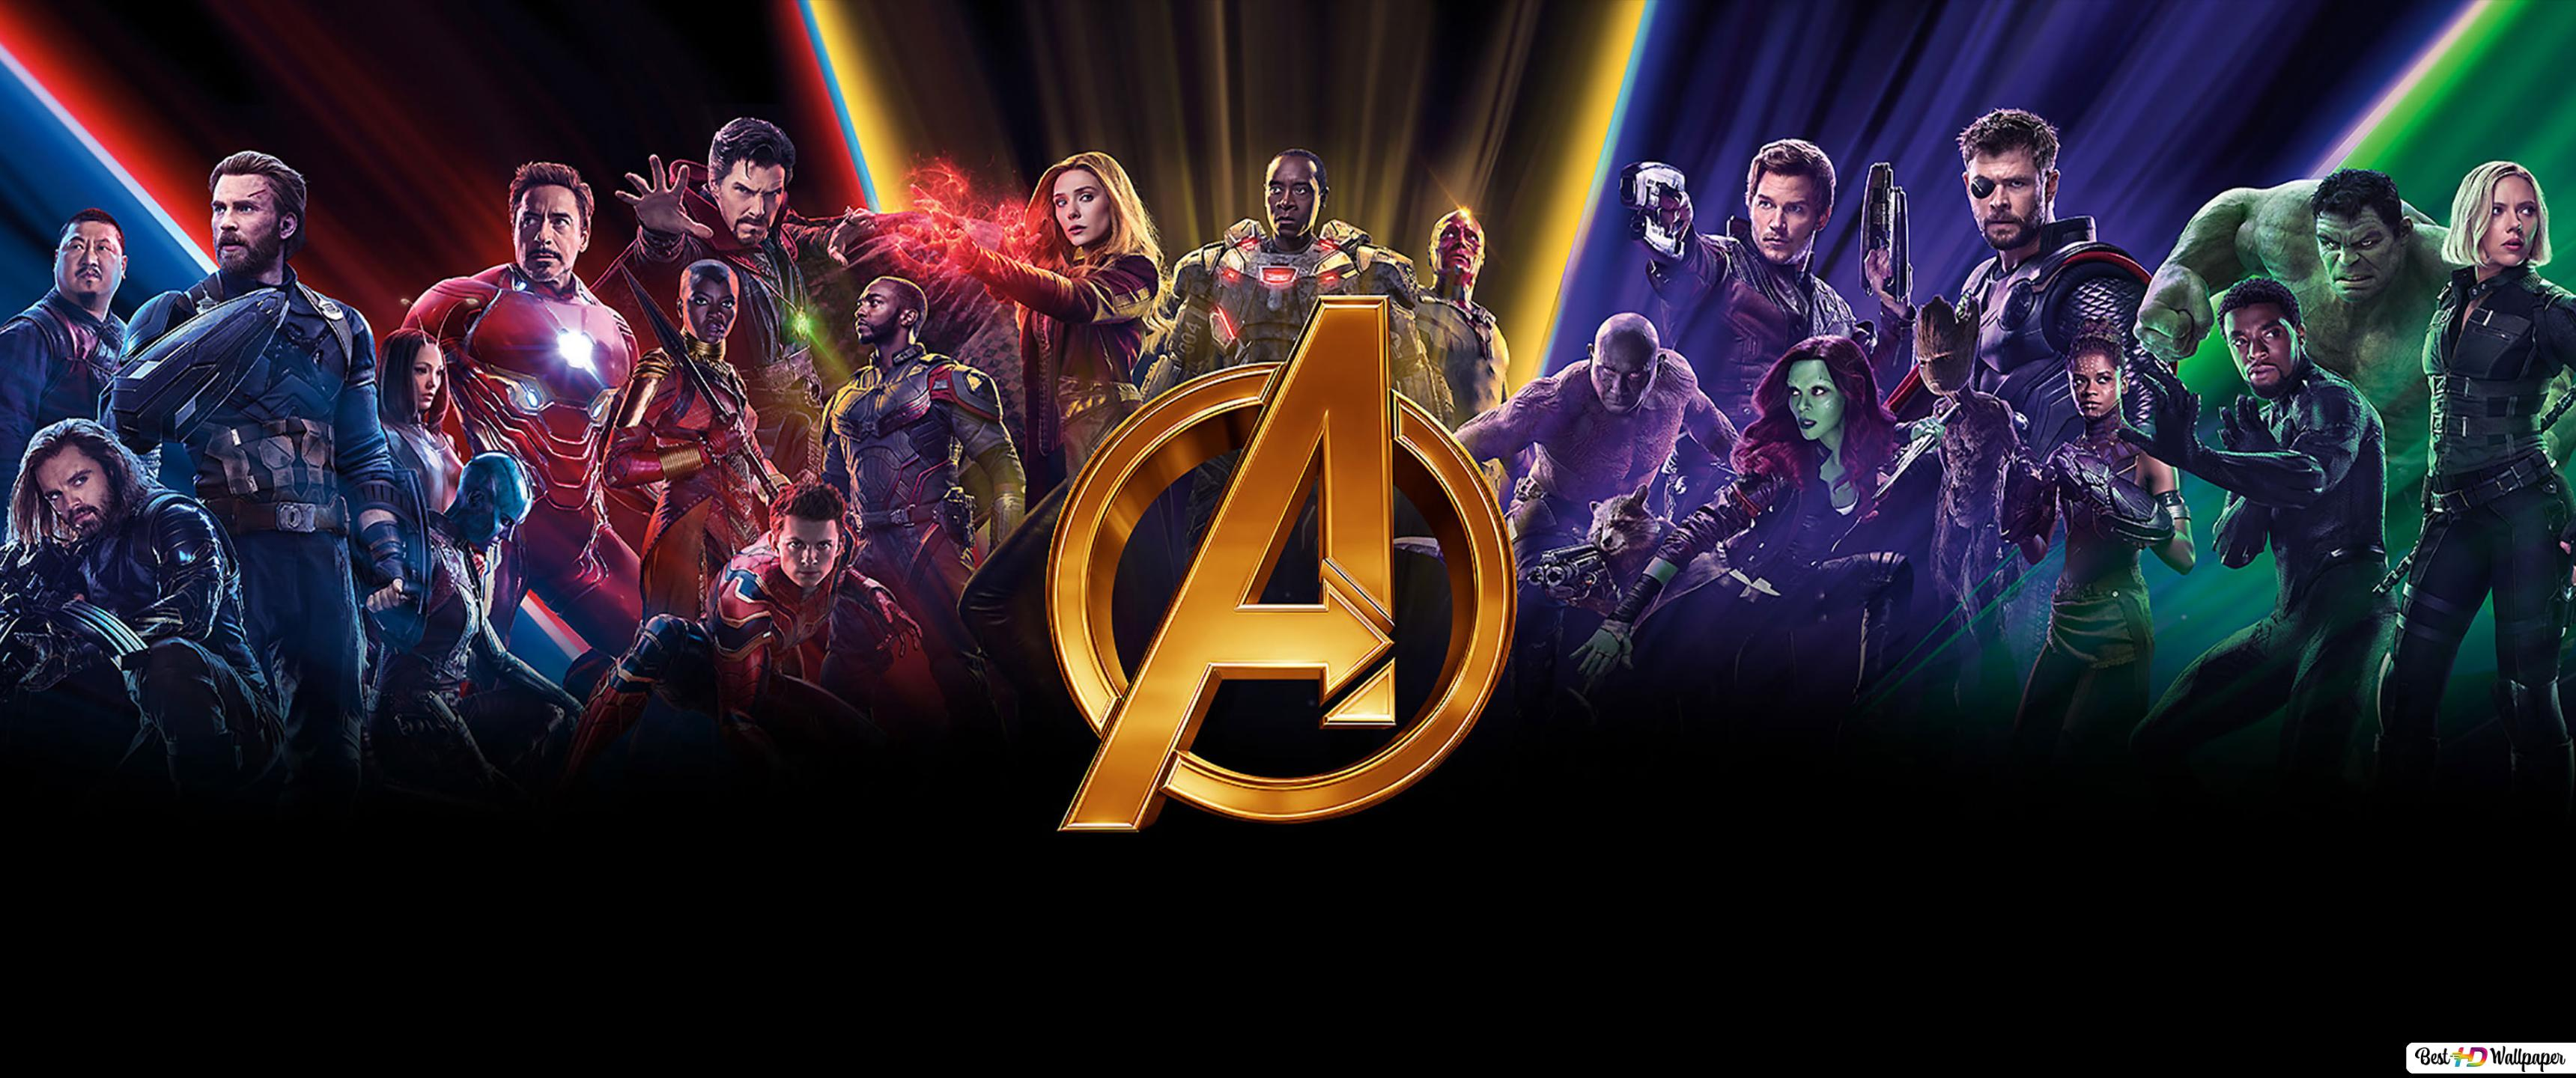 Avengers: Infinity War - All Heroes HD wallpaper download